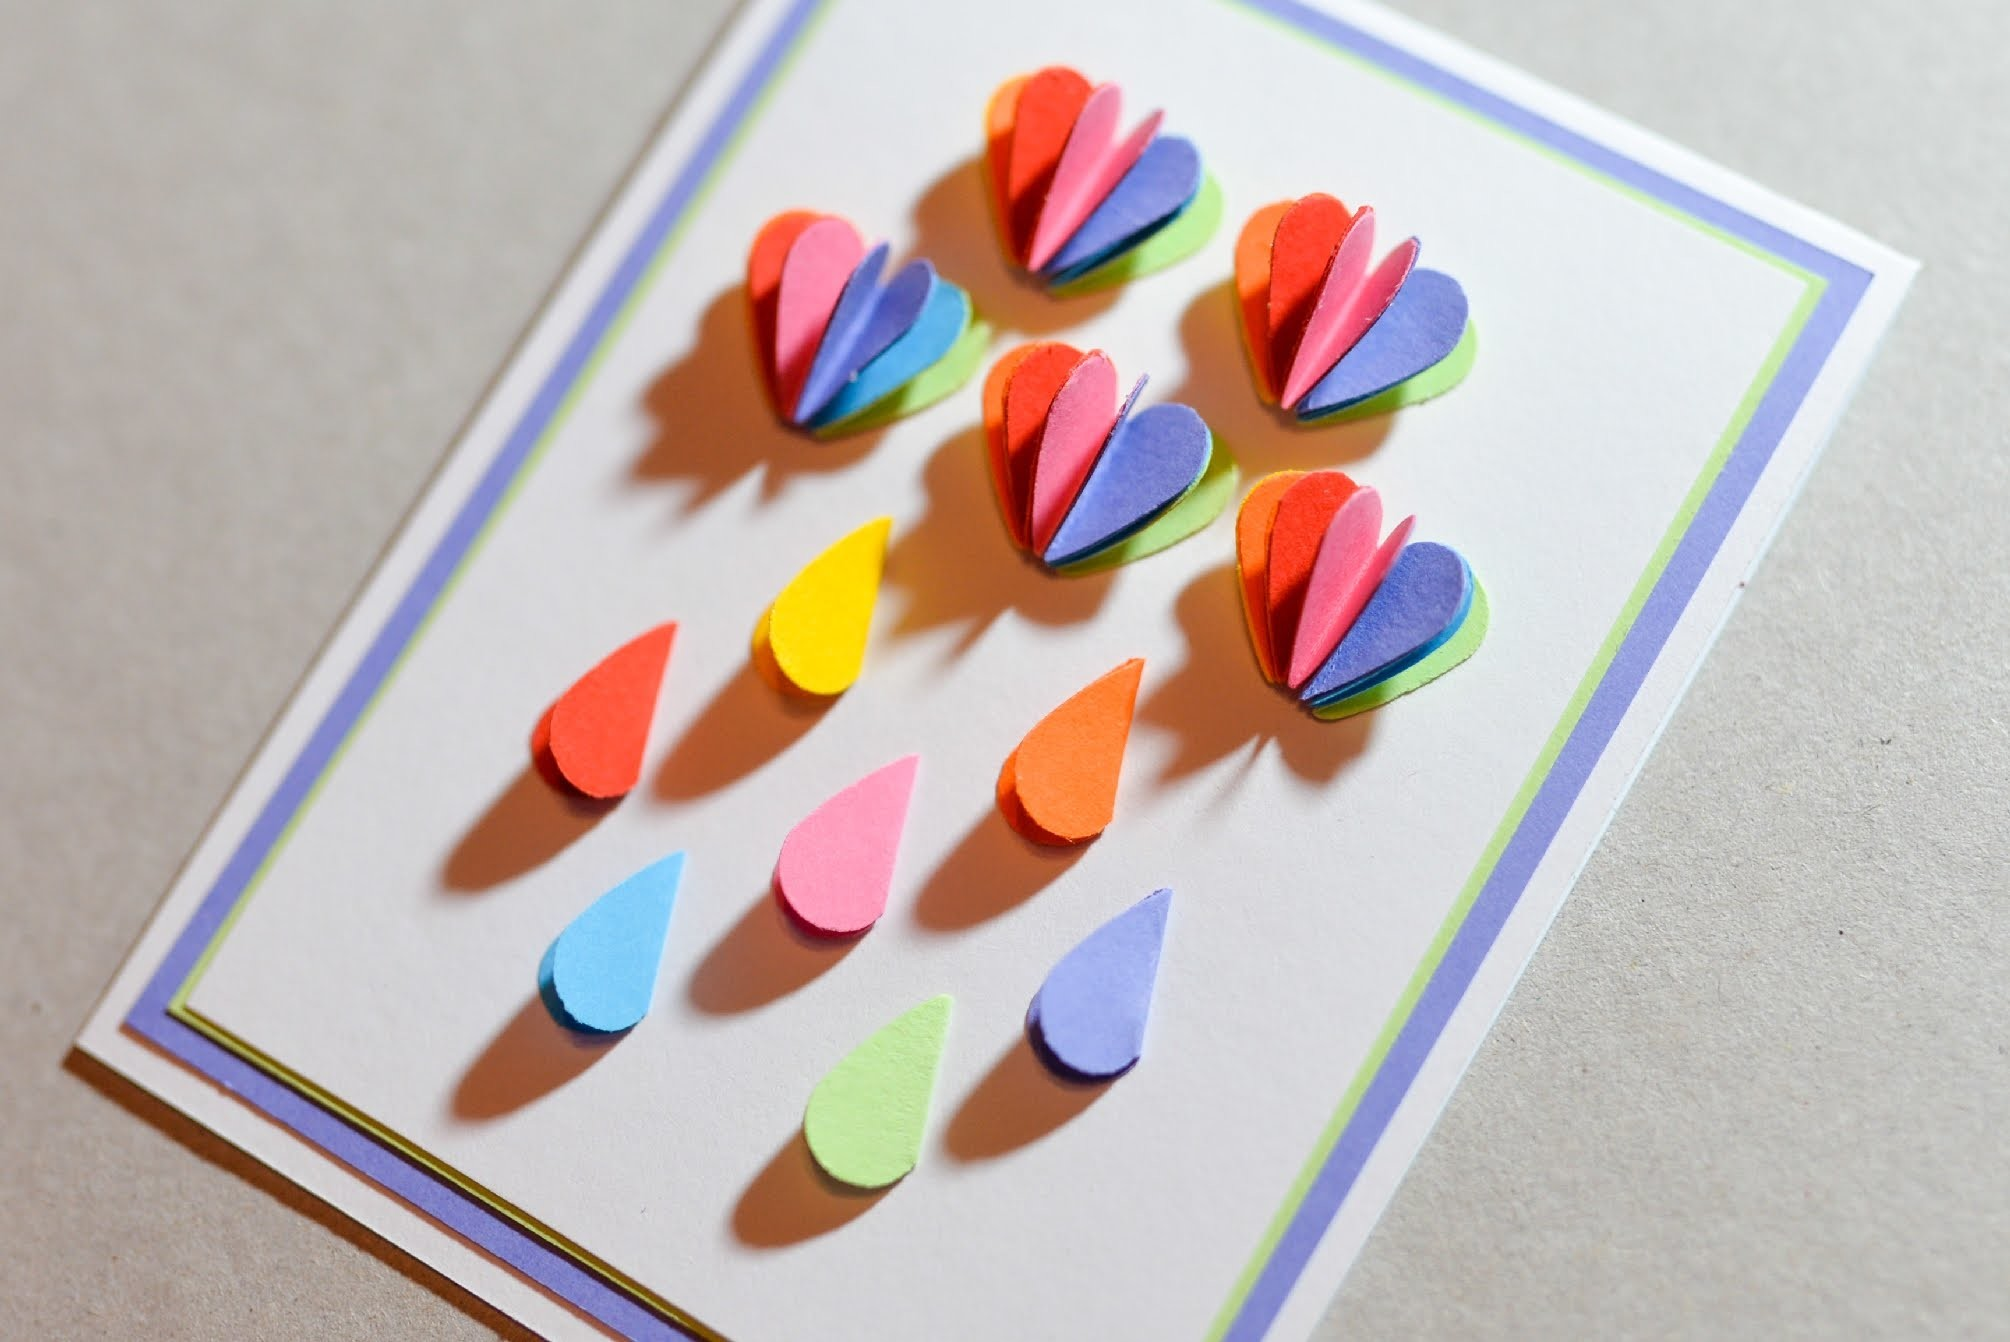 How to Make - Greeting Card Rainbow Rain - Step by Step | Kartka Tęczowy Deszcz